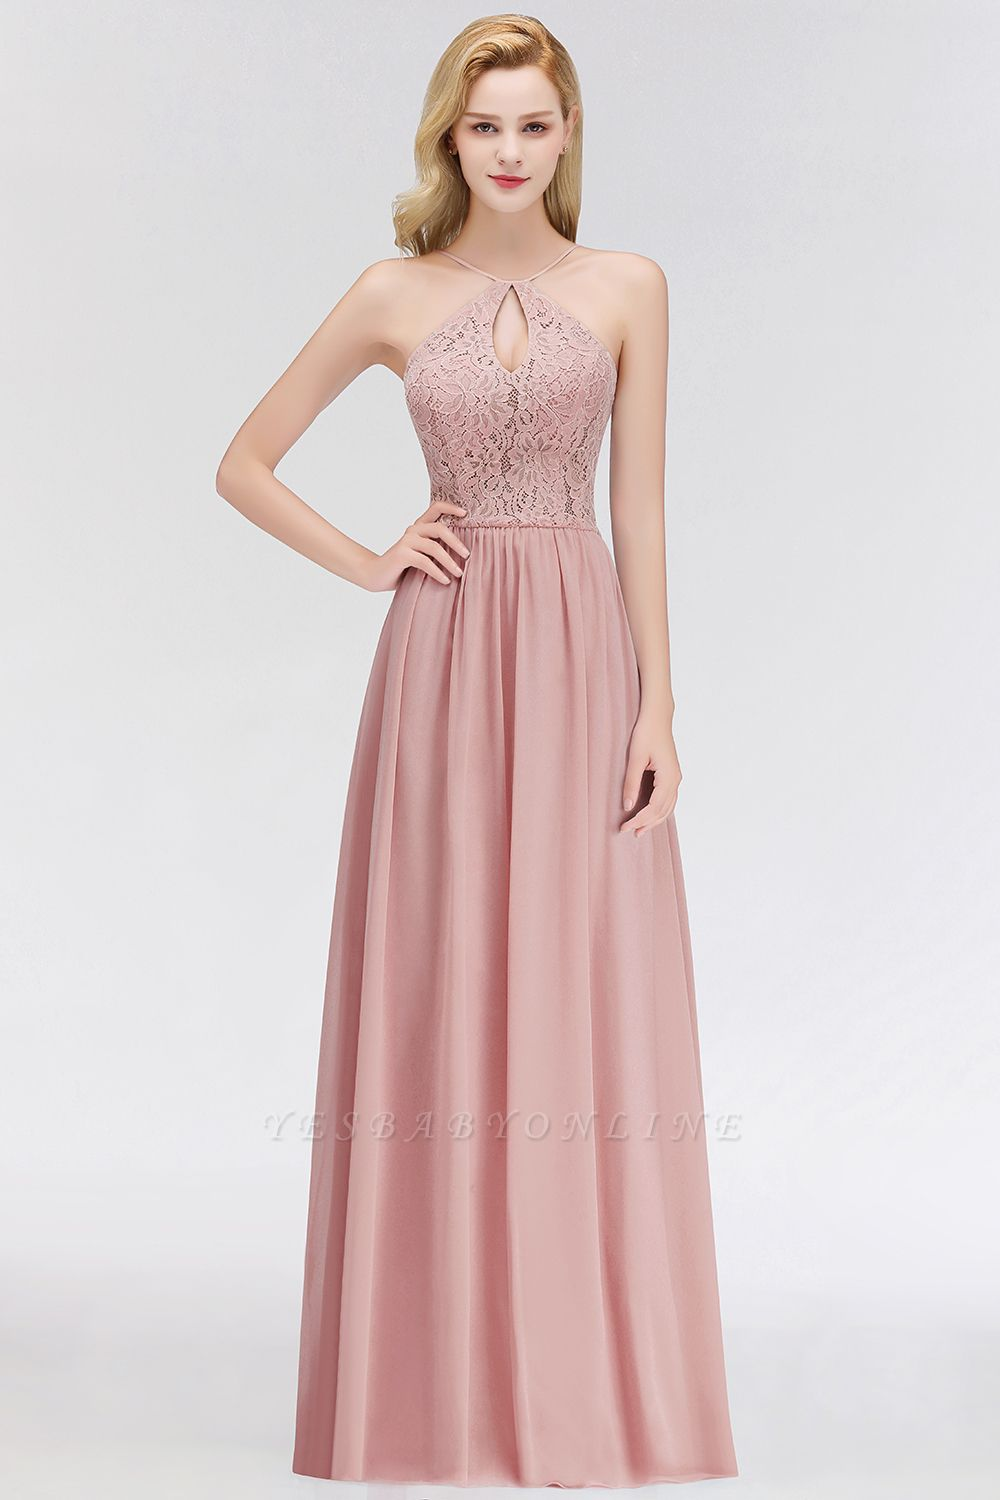 Halter Floor-Length Keyhole Lace Chiffon Long Bridesmaid Dress